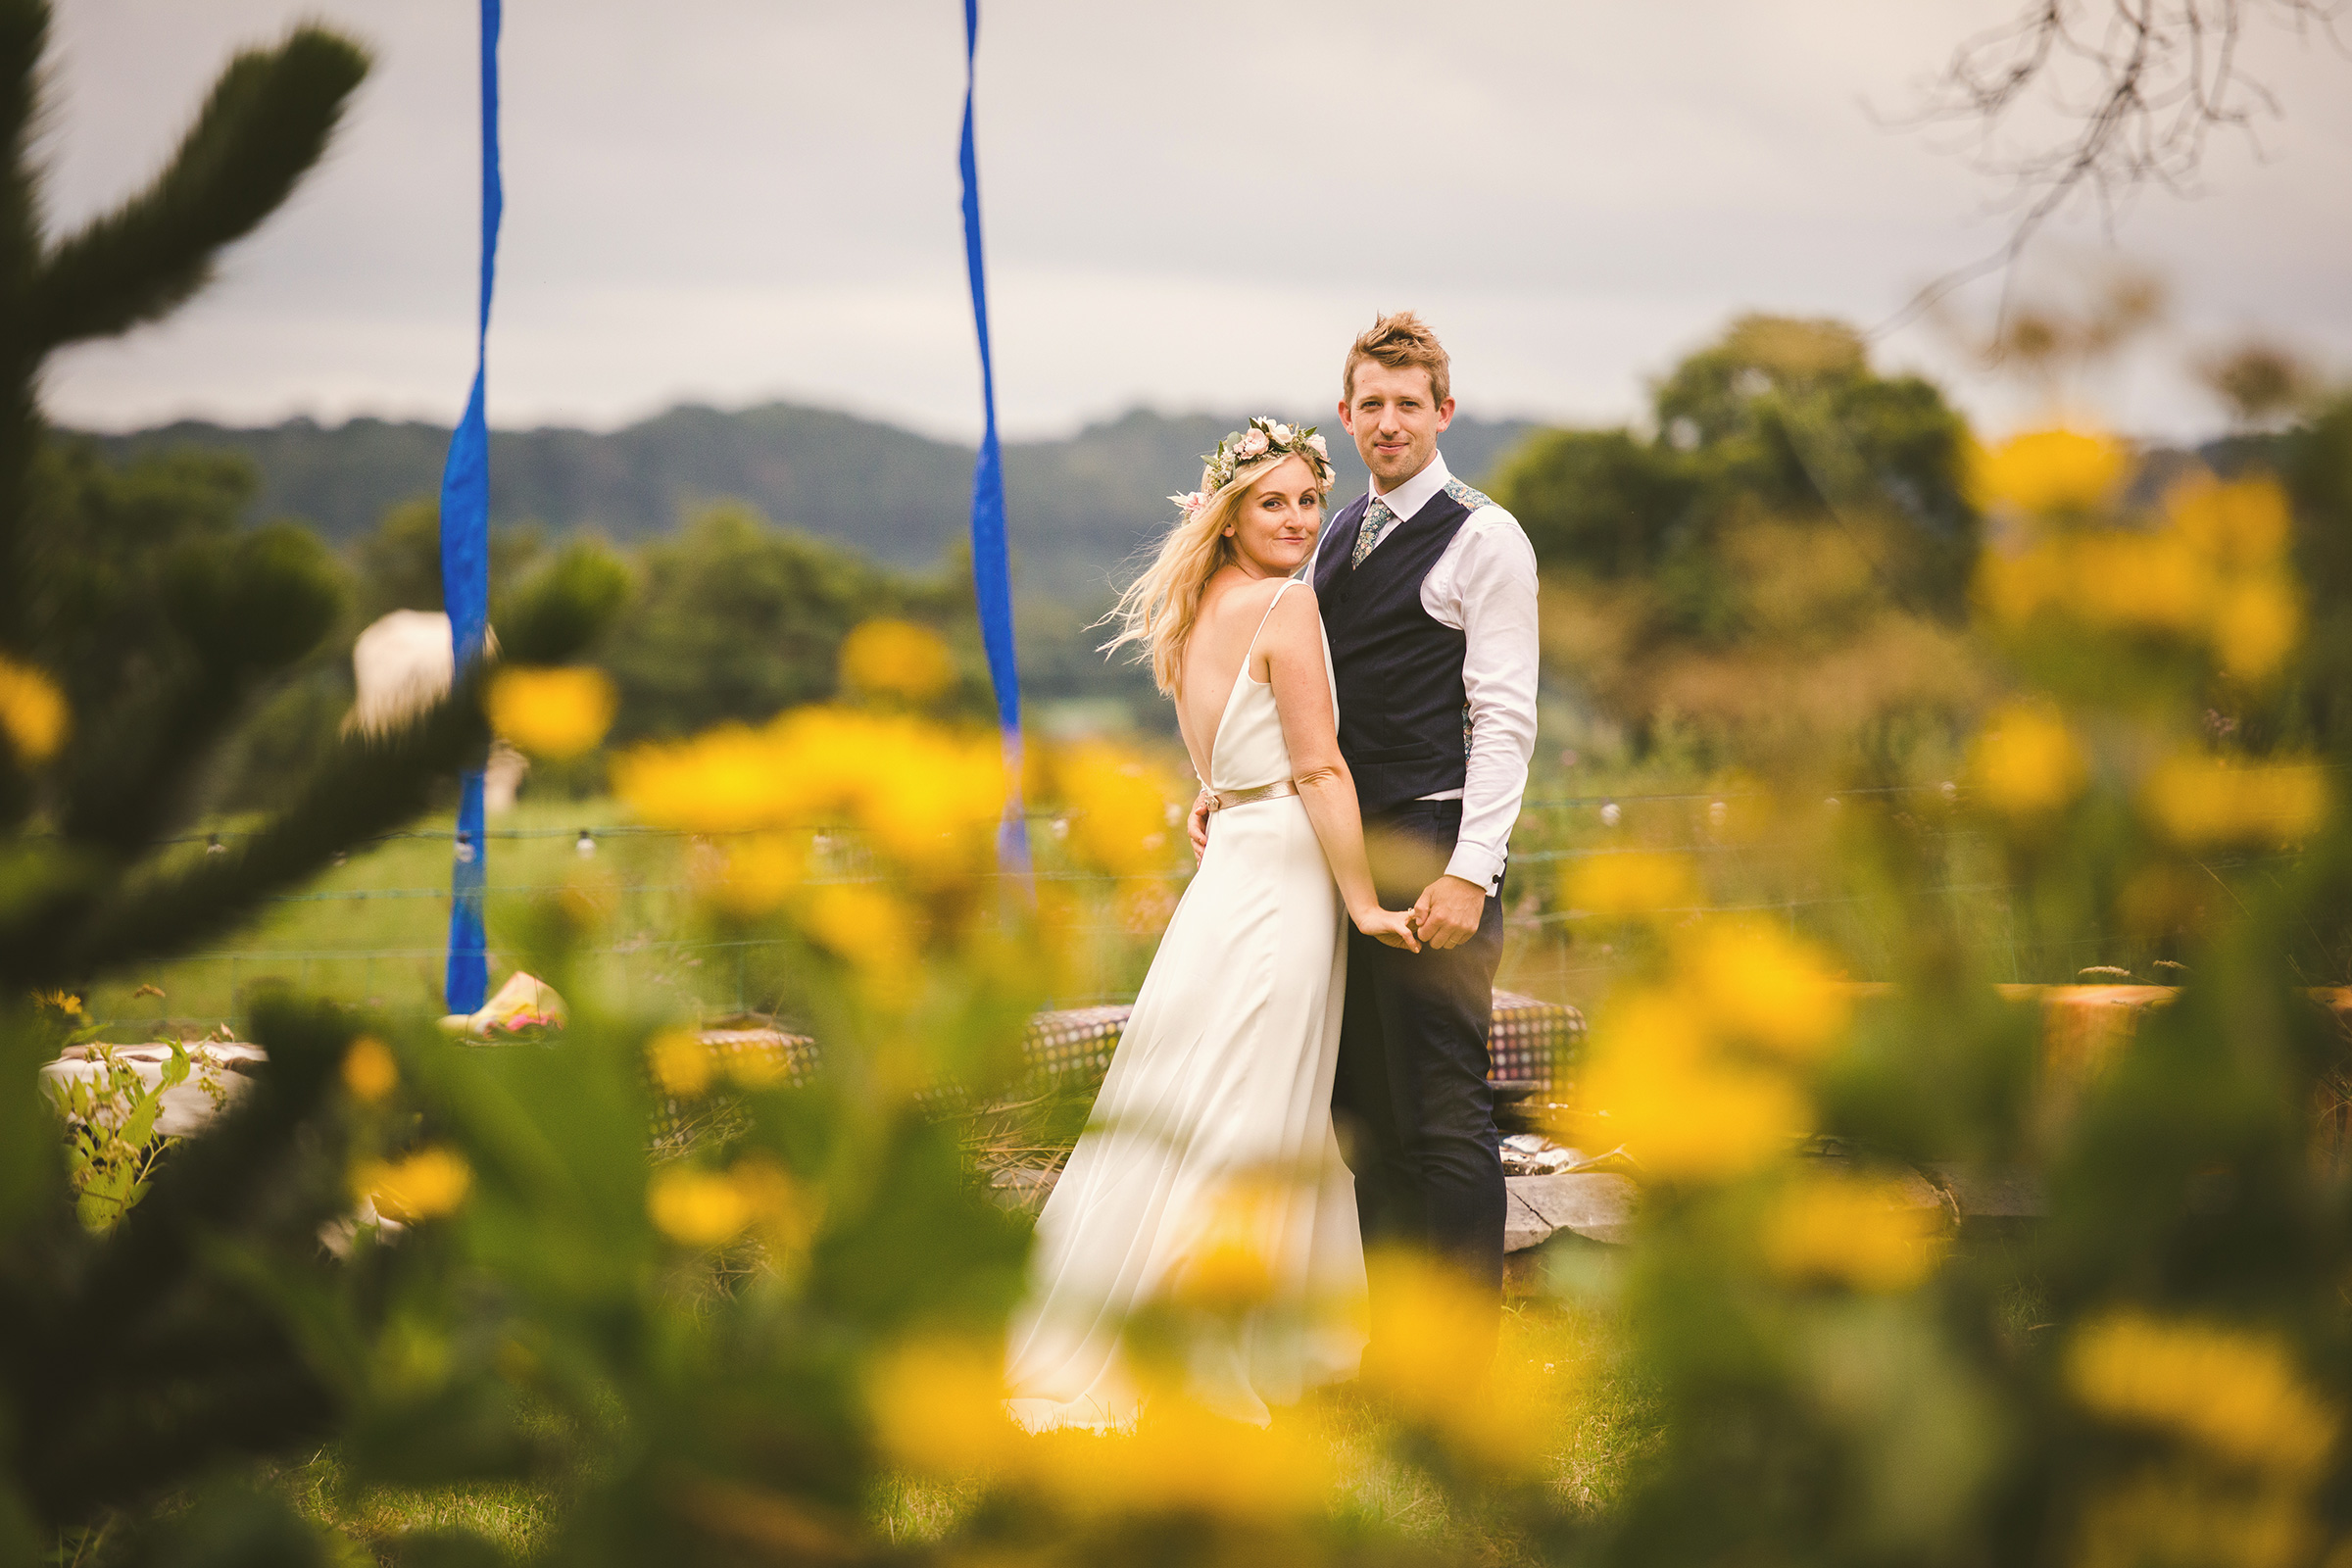 bride and groom in couple pose in garden with yellow flowers